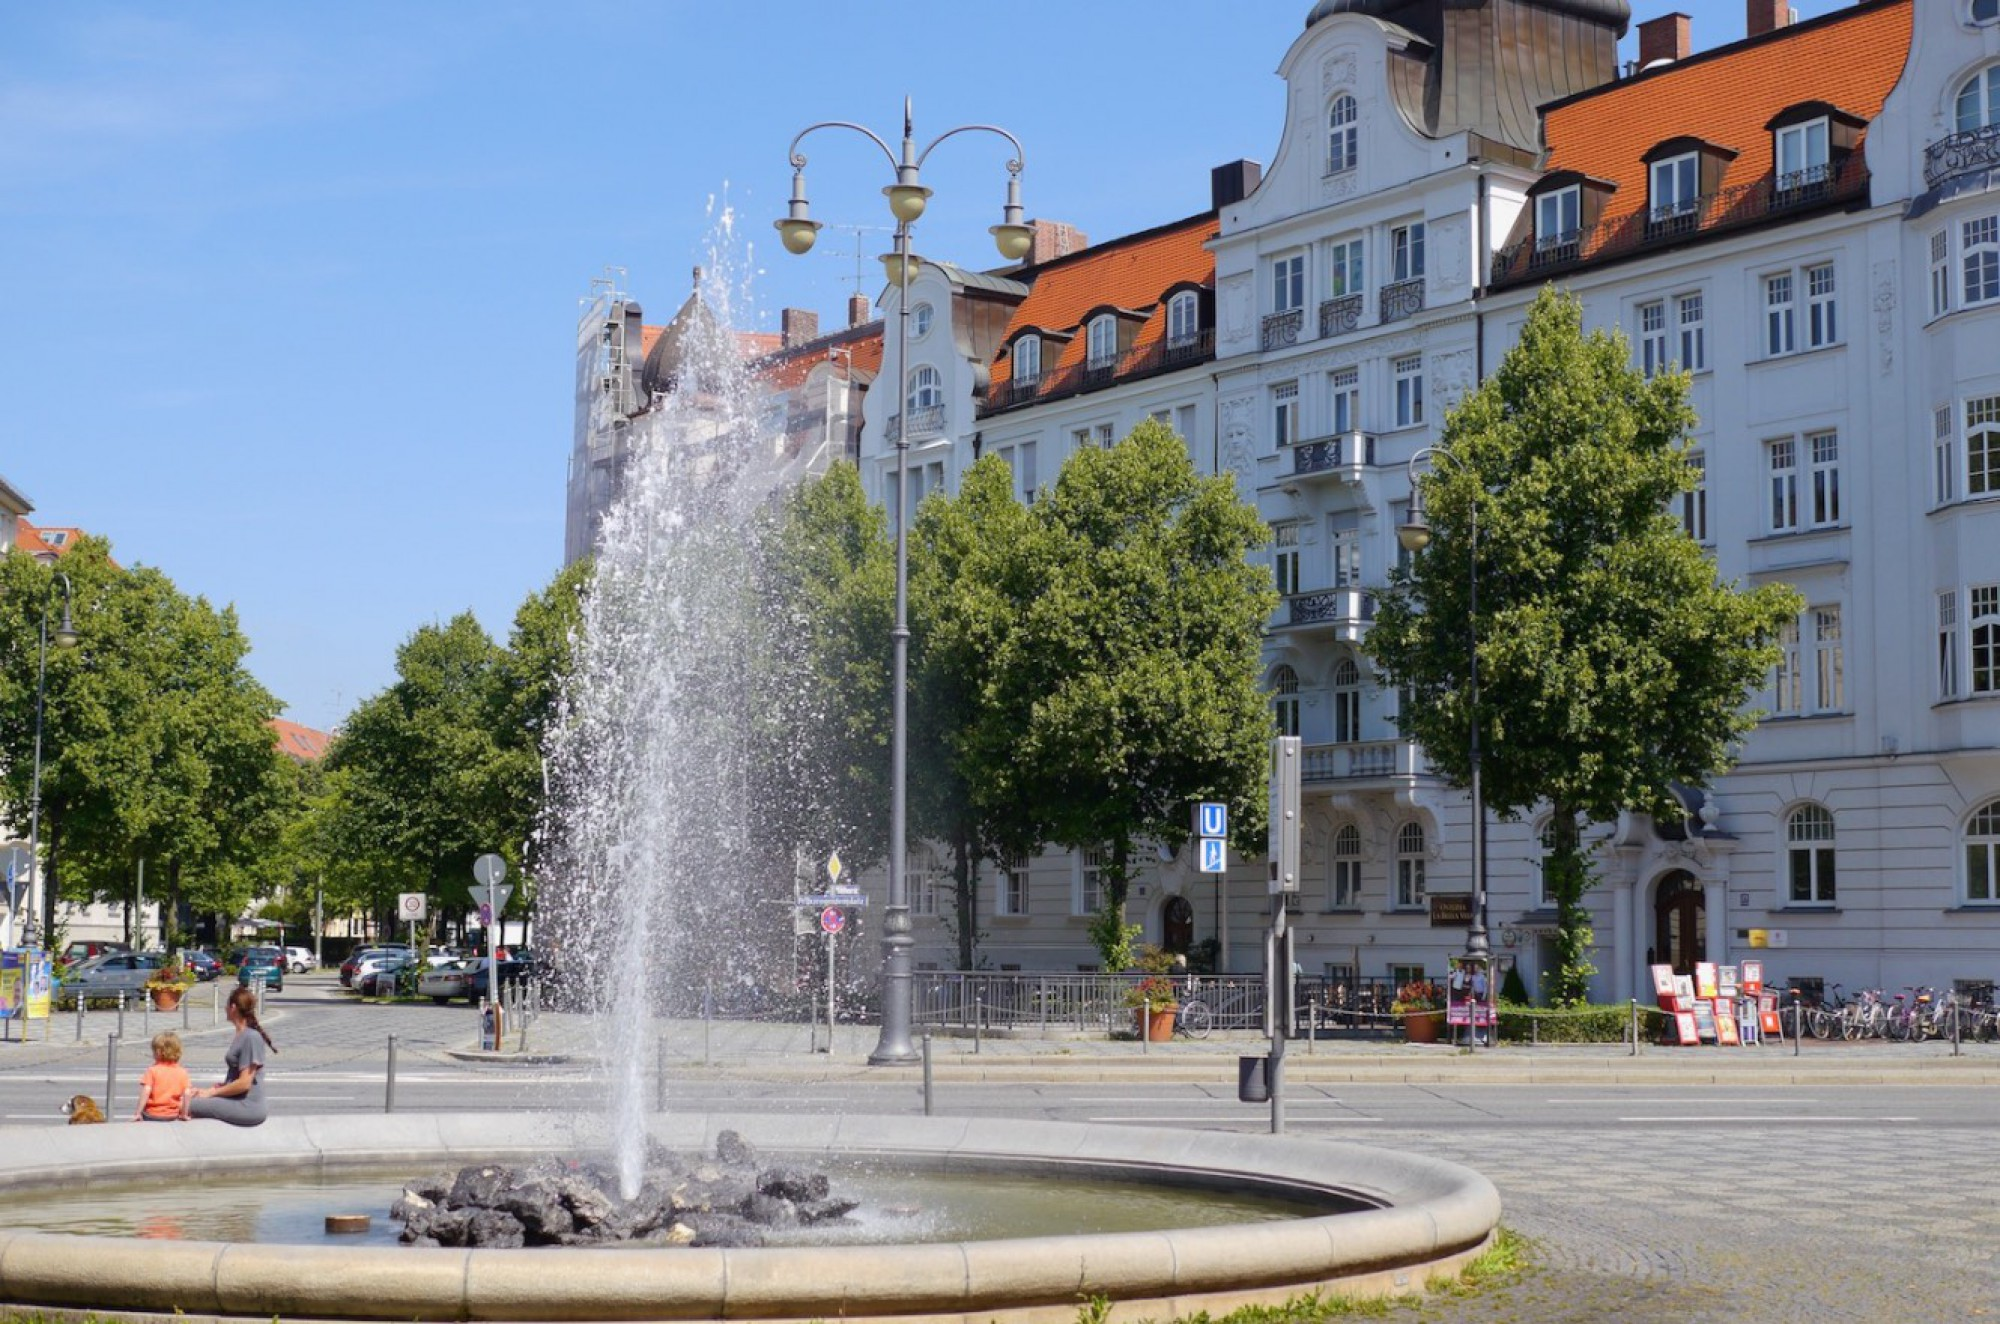 3 walking minutes from Prinzregentenplatz